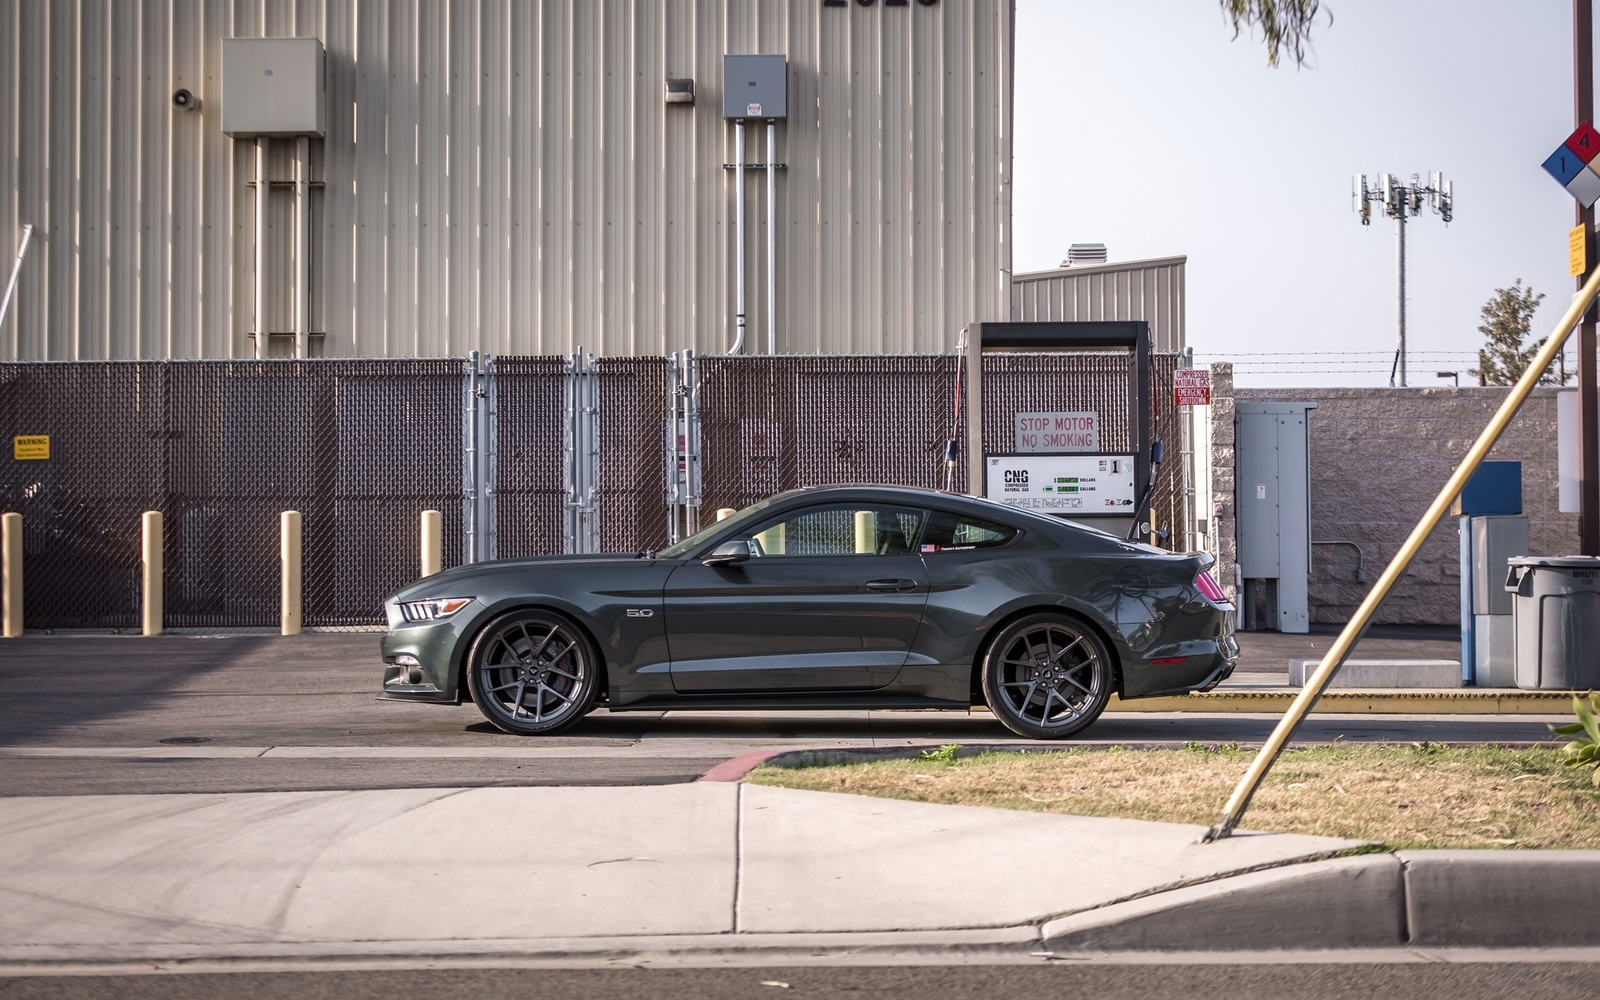 gaurd-green-ford-mustang-gtpp-s550-vorsteiner-vff101-rotory-forged-concave-wheels.jpg